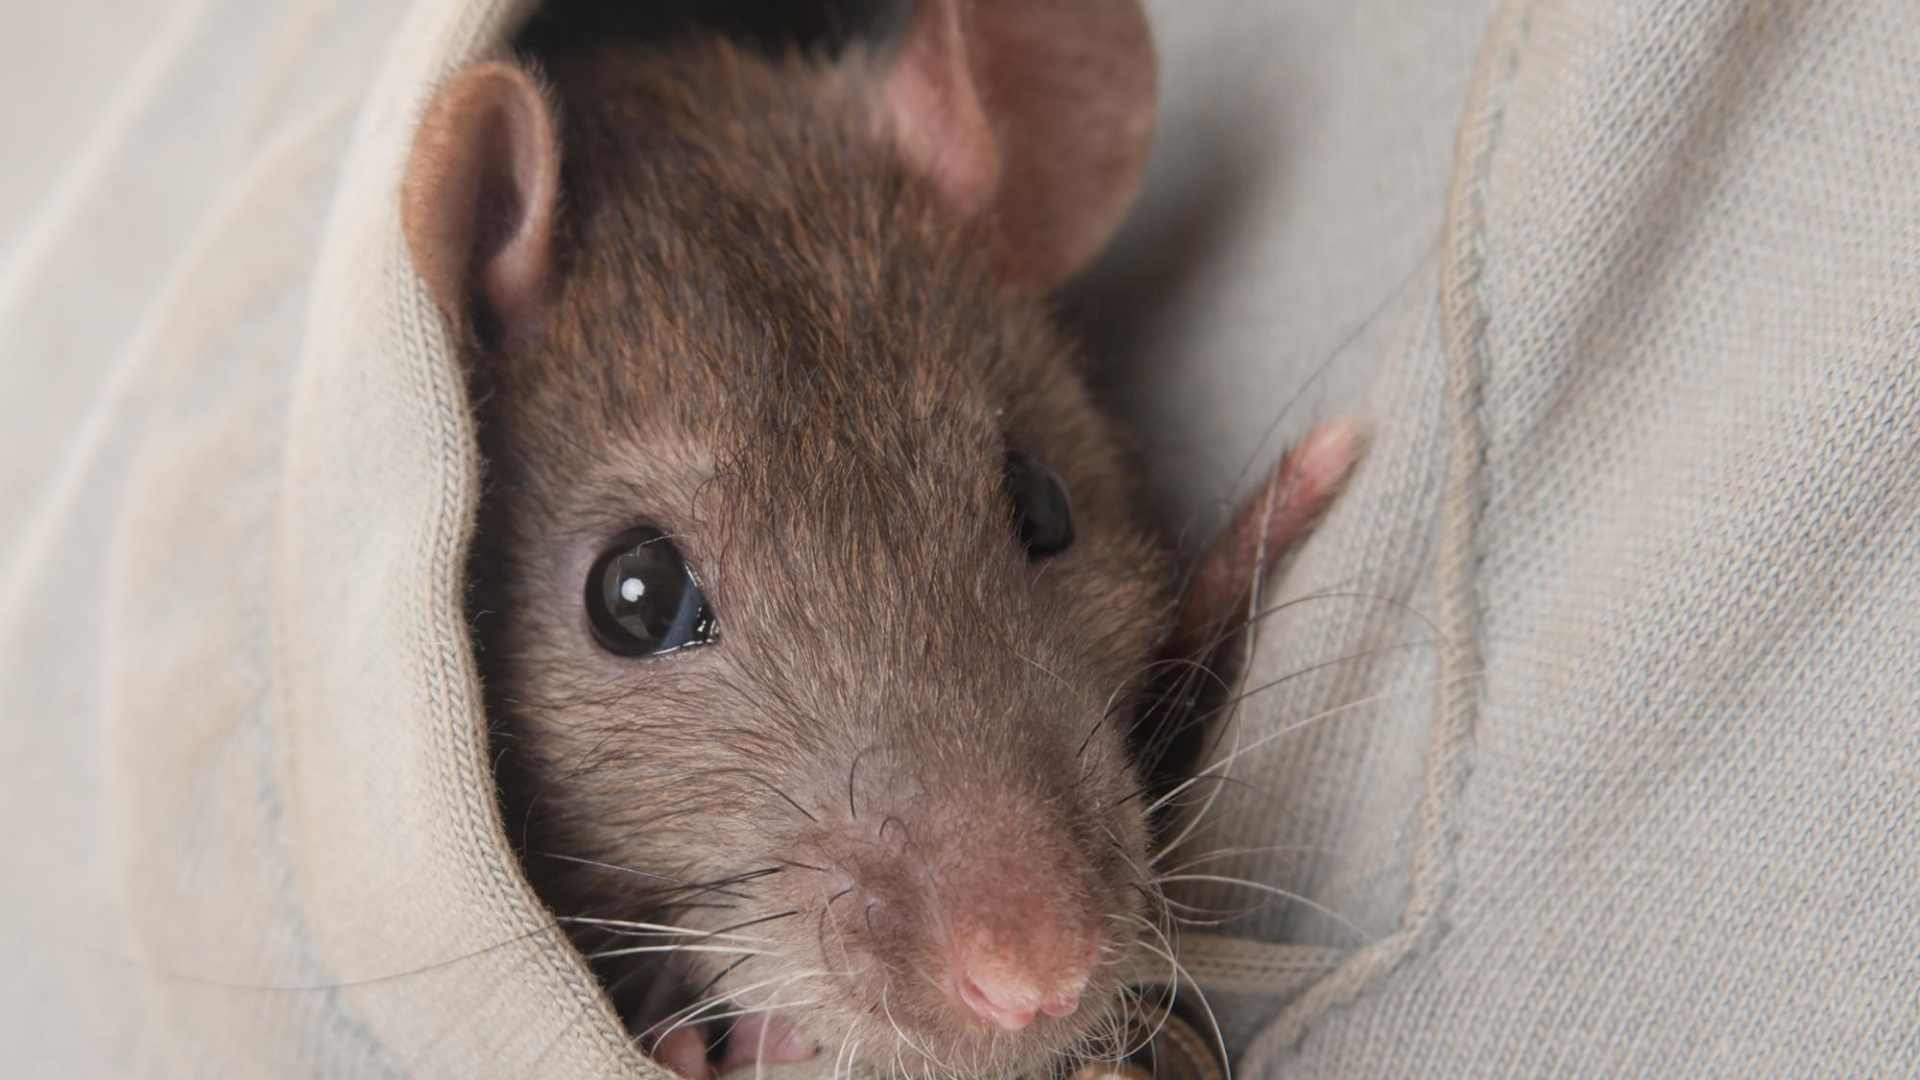 lure a rat out of hiding place